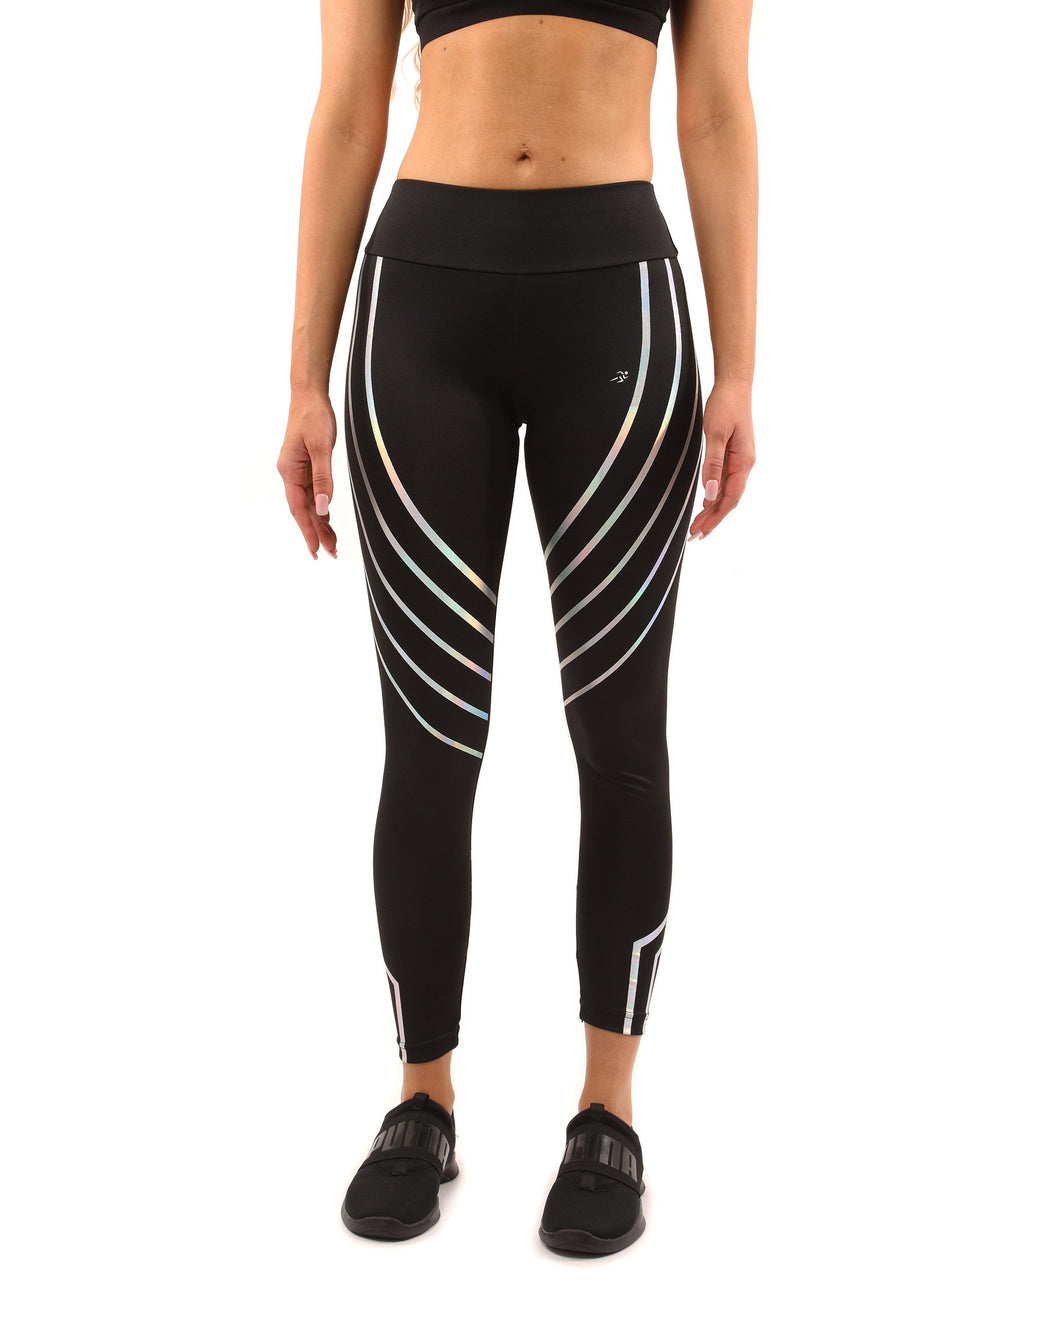 Laguna Leggings - Black